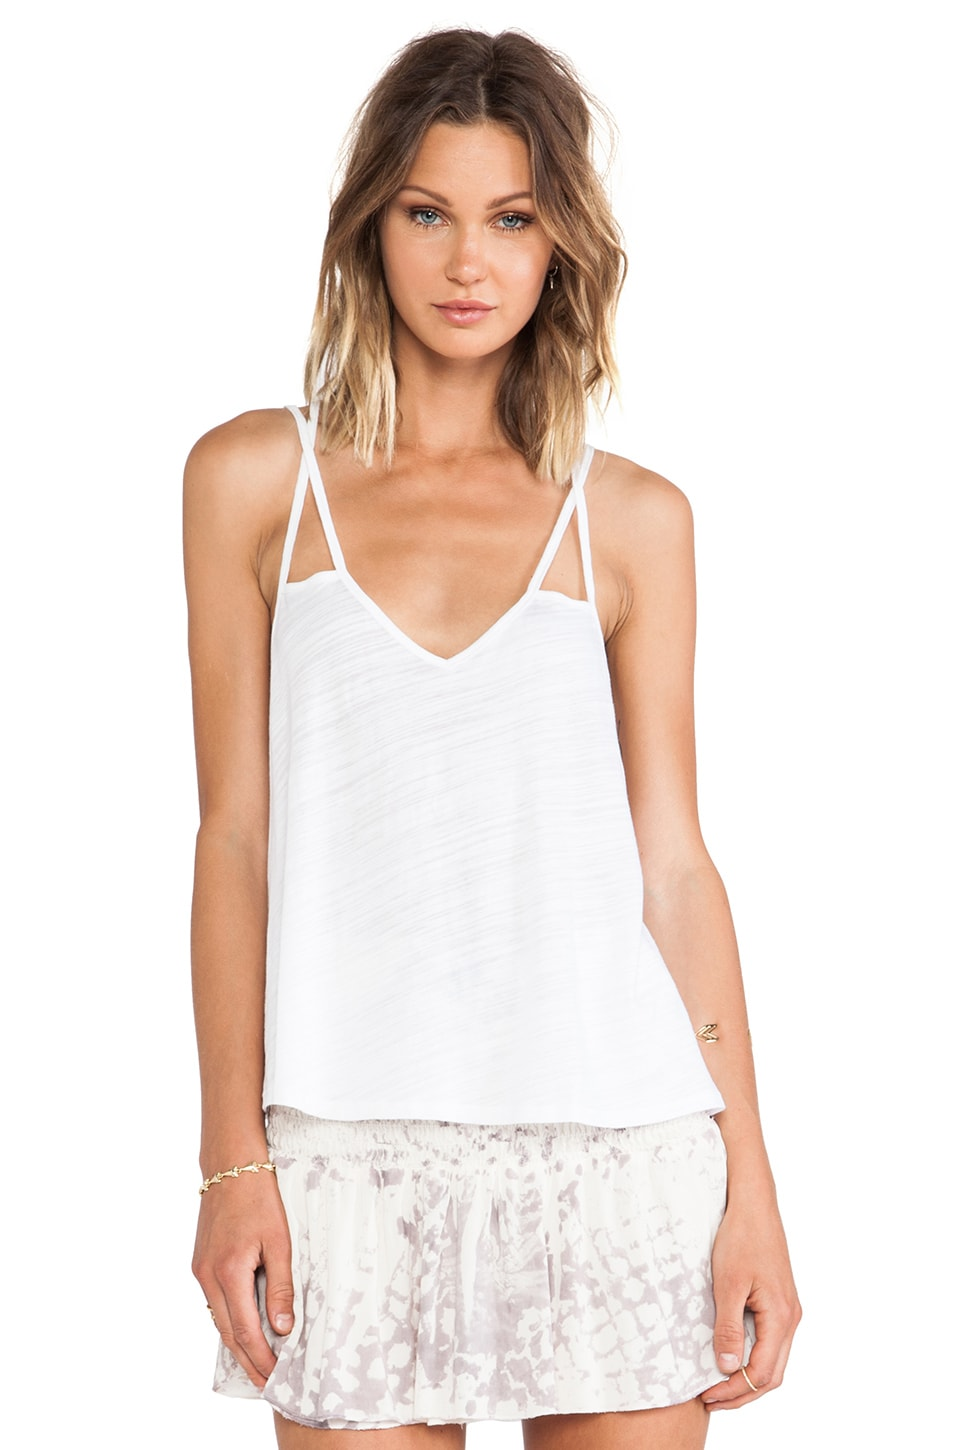 Blue Life Sunburst Cami in White